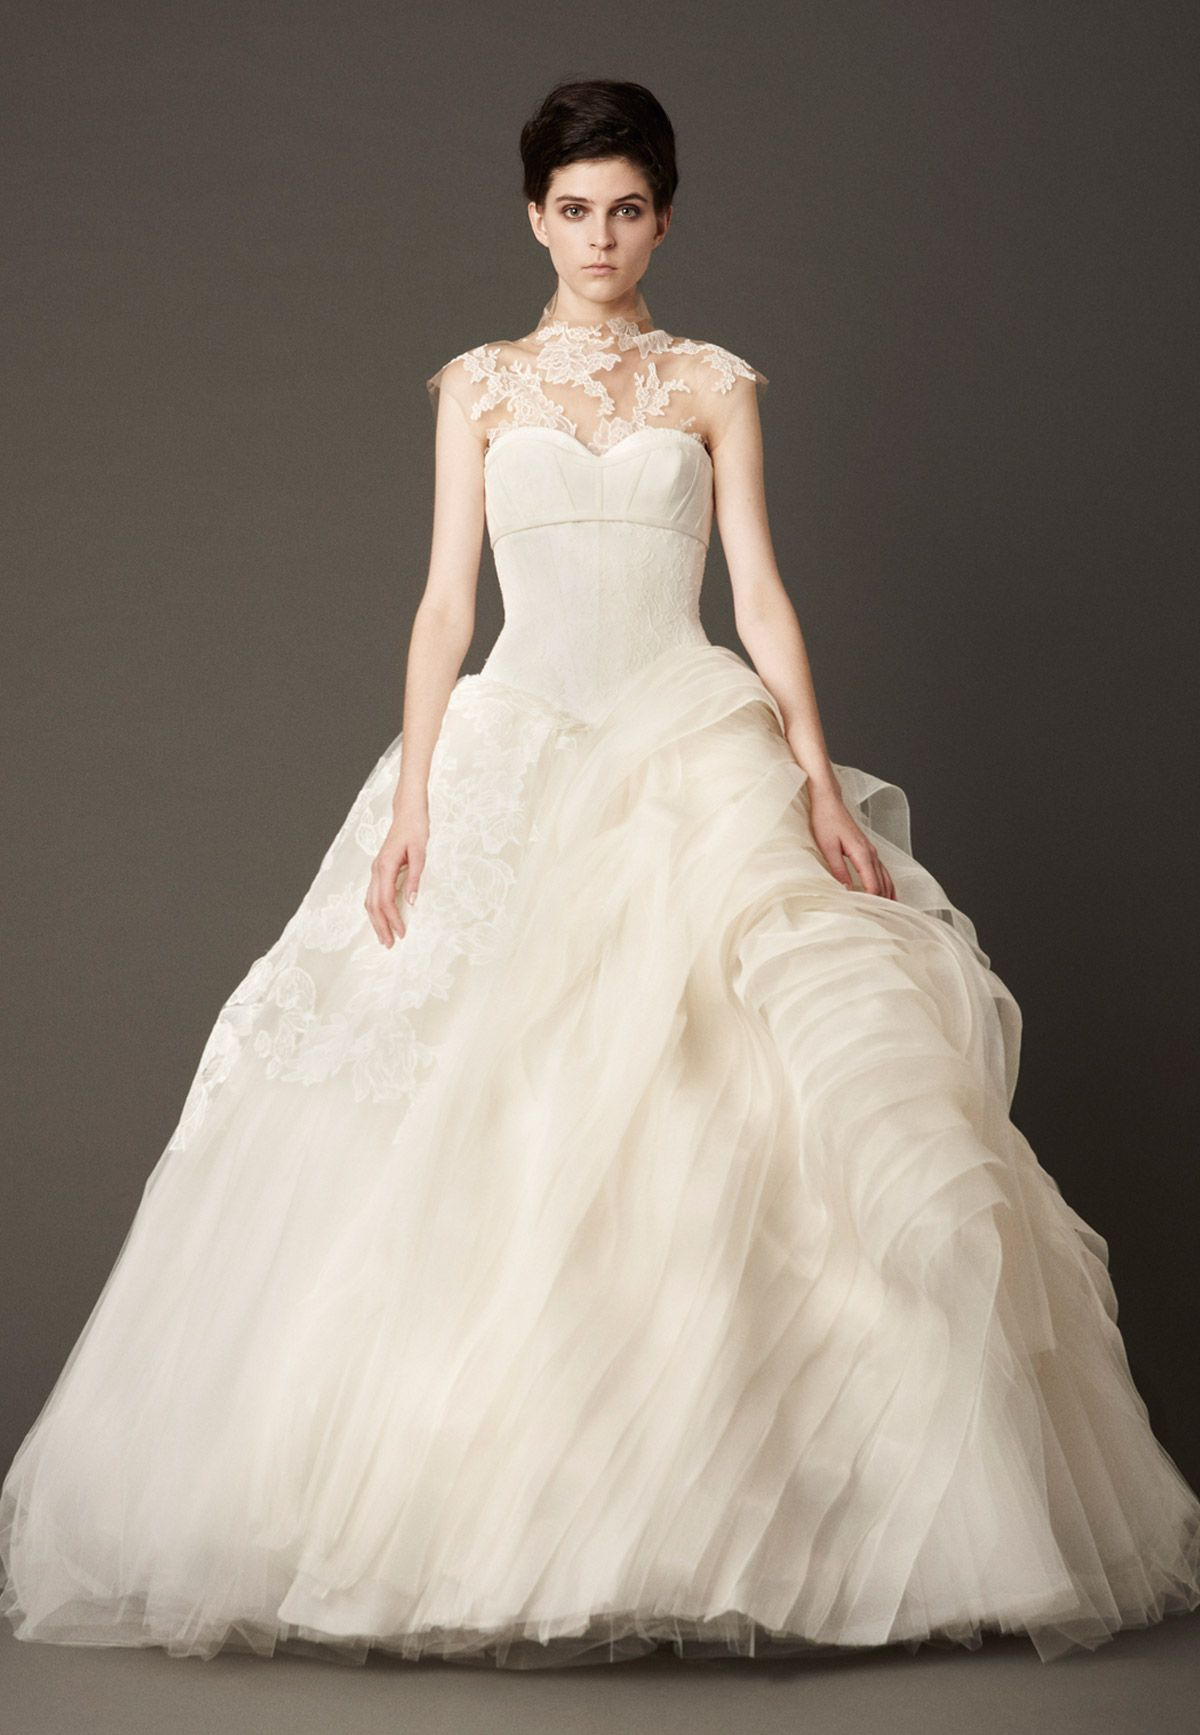 my wedding dress is strapless can they add a turtleneck to it